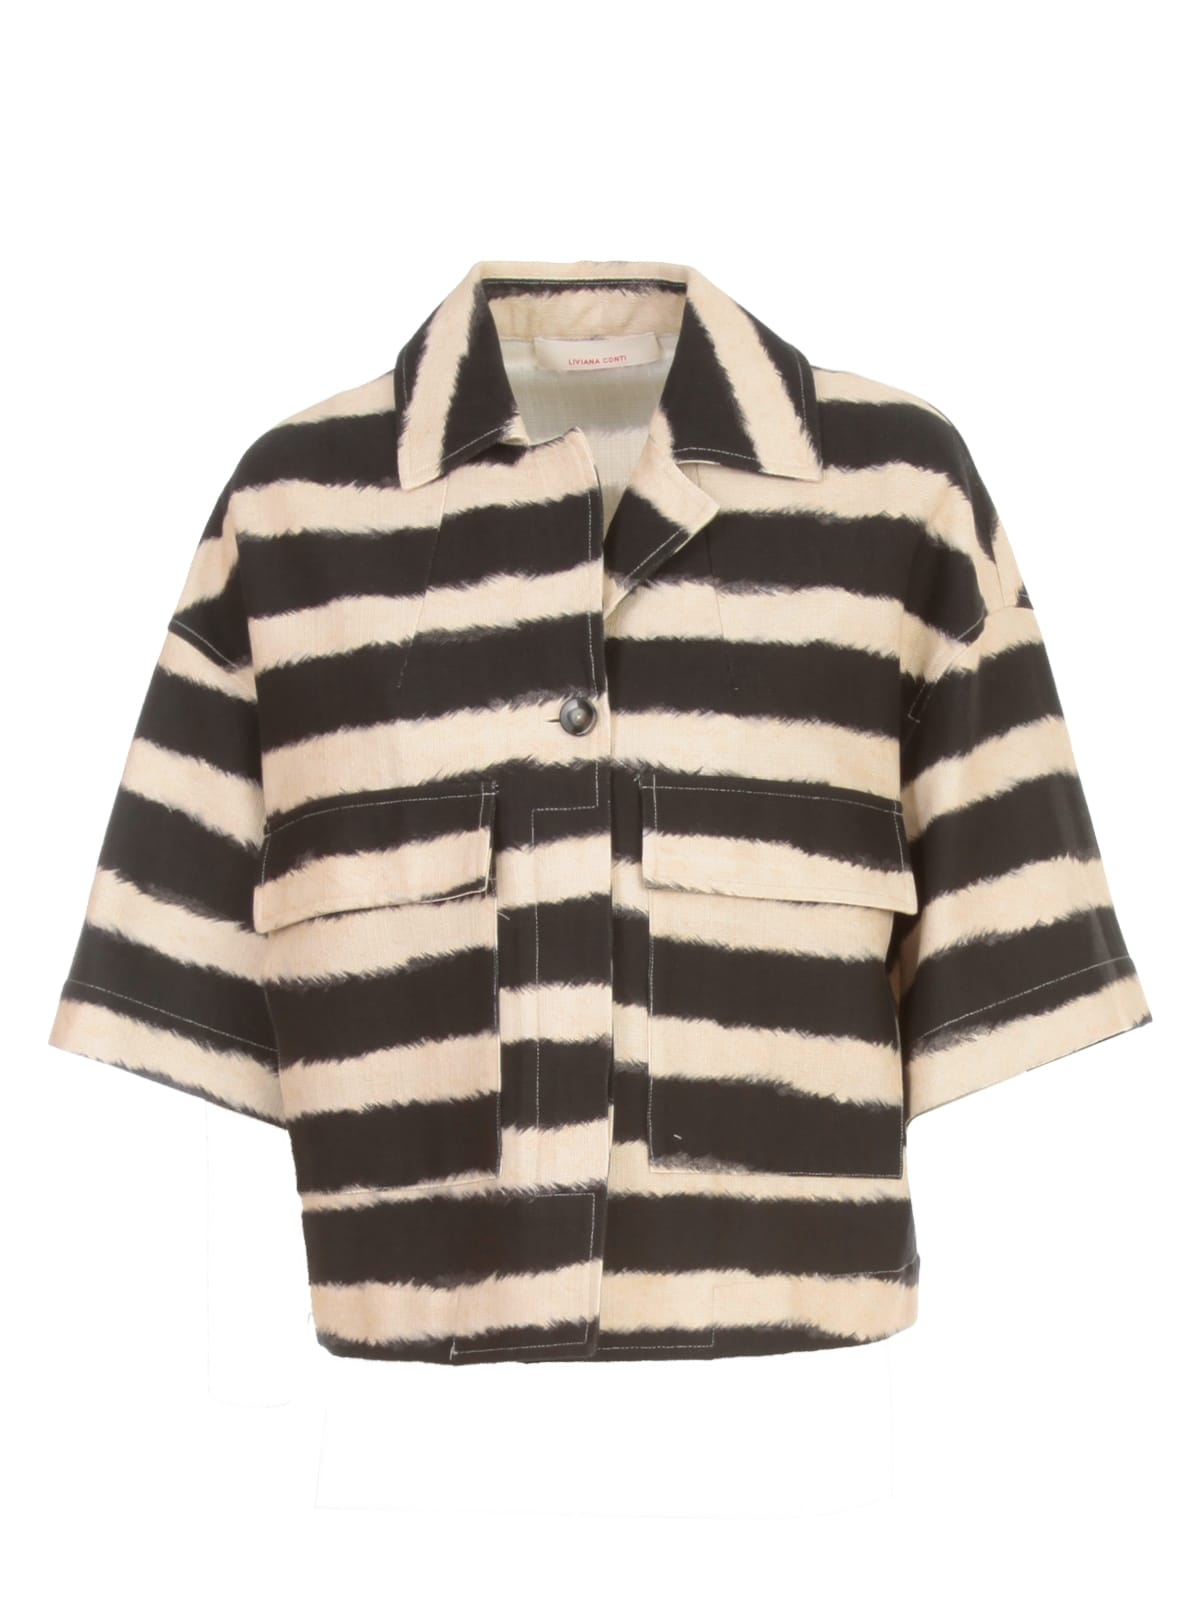 Liviana Conti Striped Printed Jacket